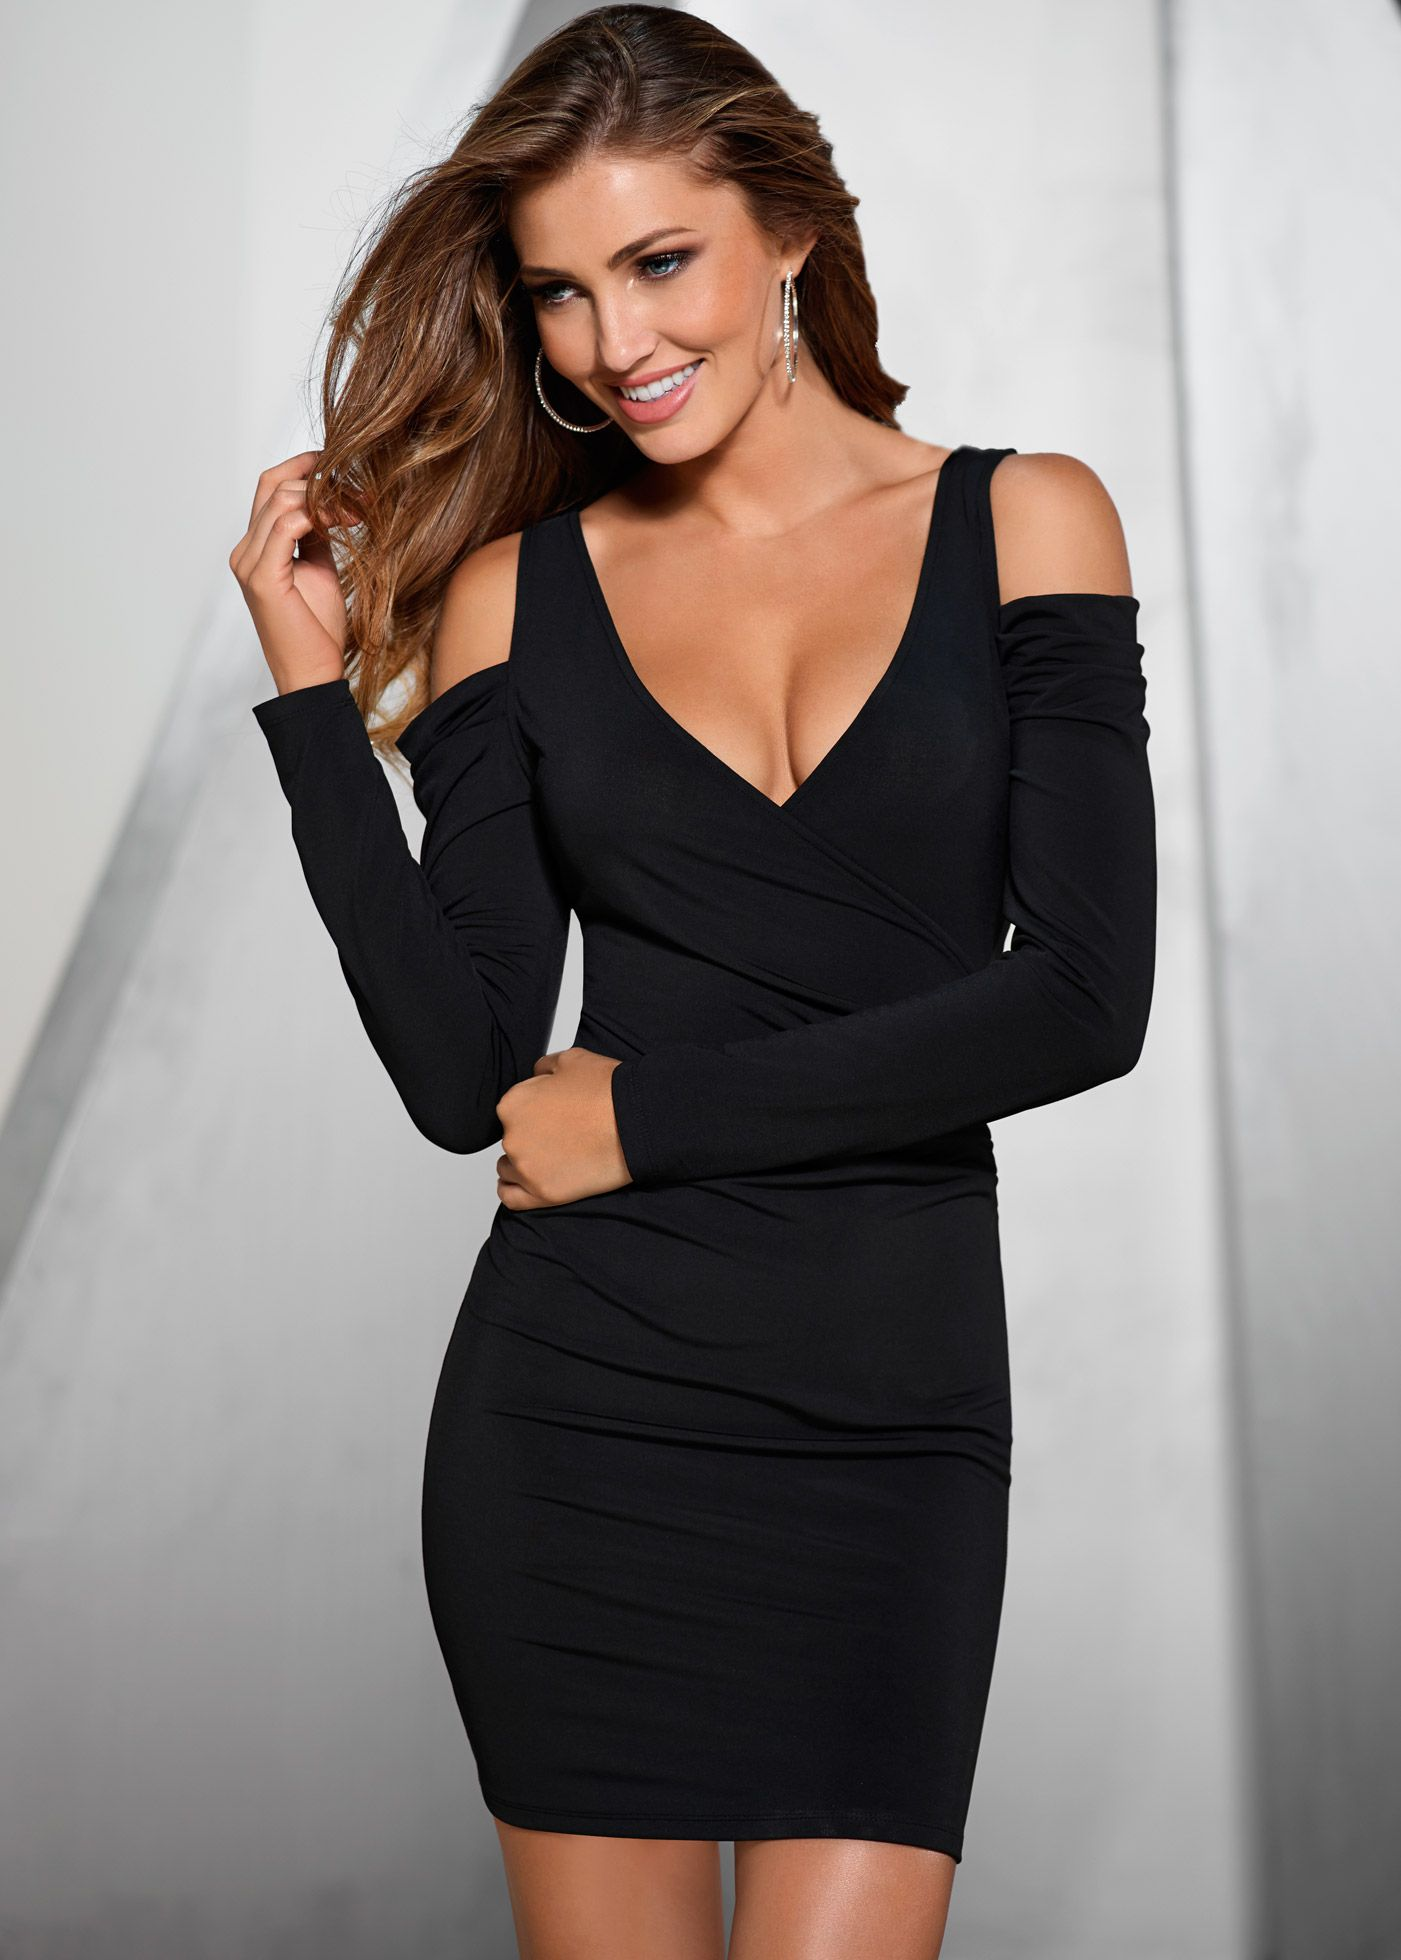 Kleid im Casual-Chic Style | Boutique, Woman and Black